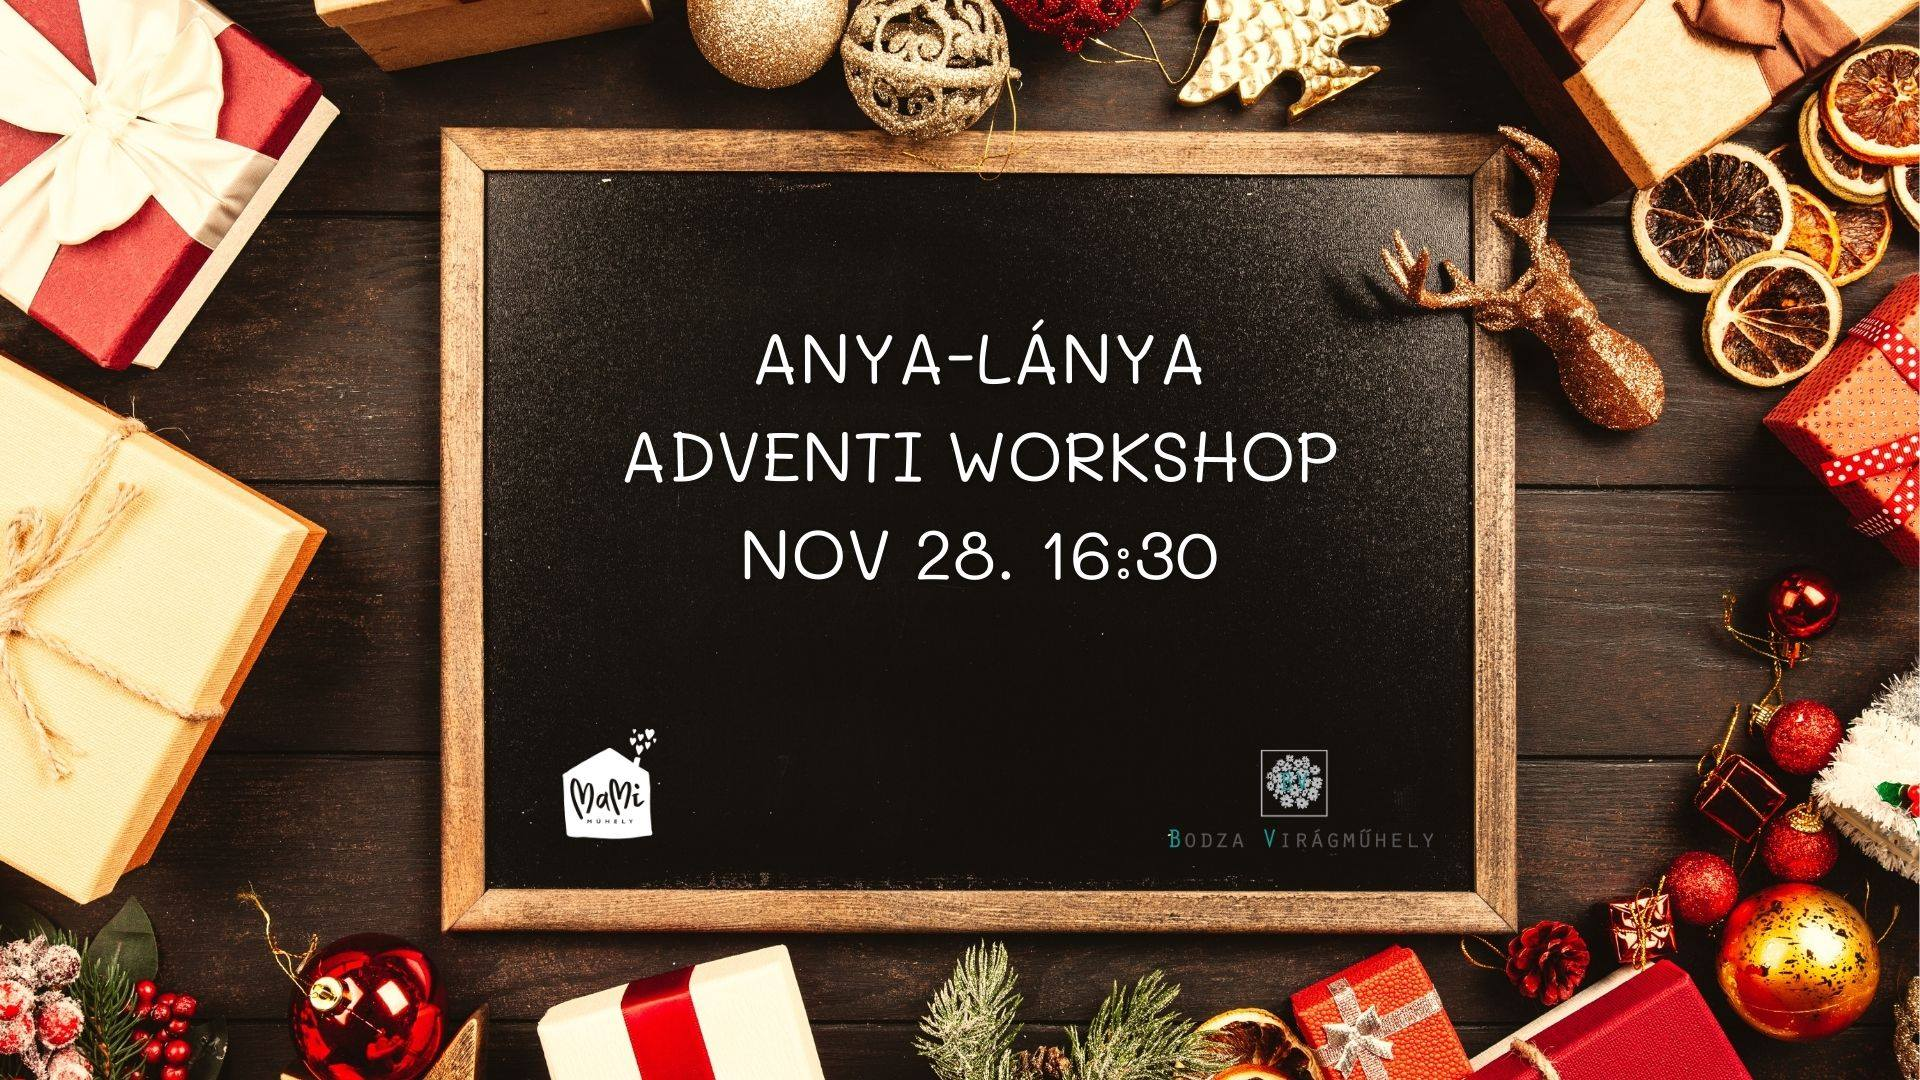 Anya-lánya adventi workshop